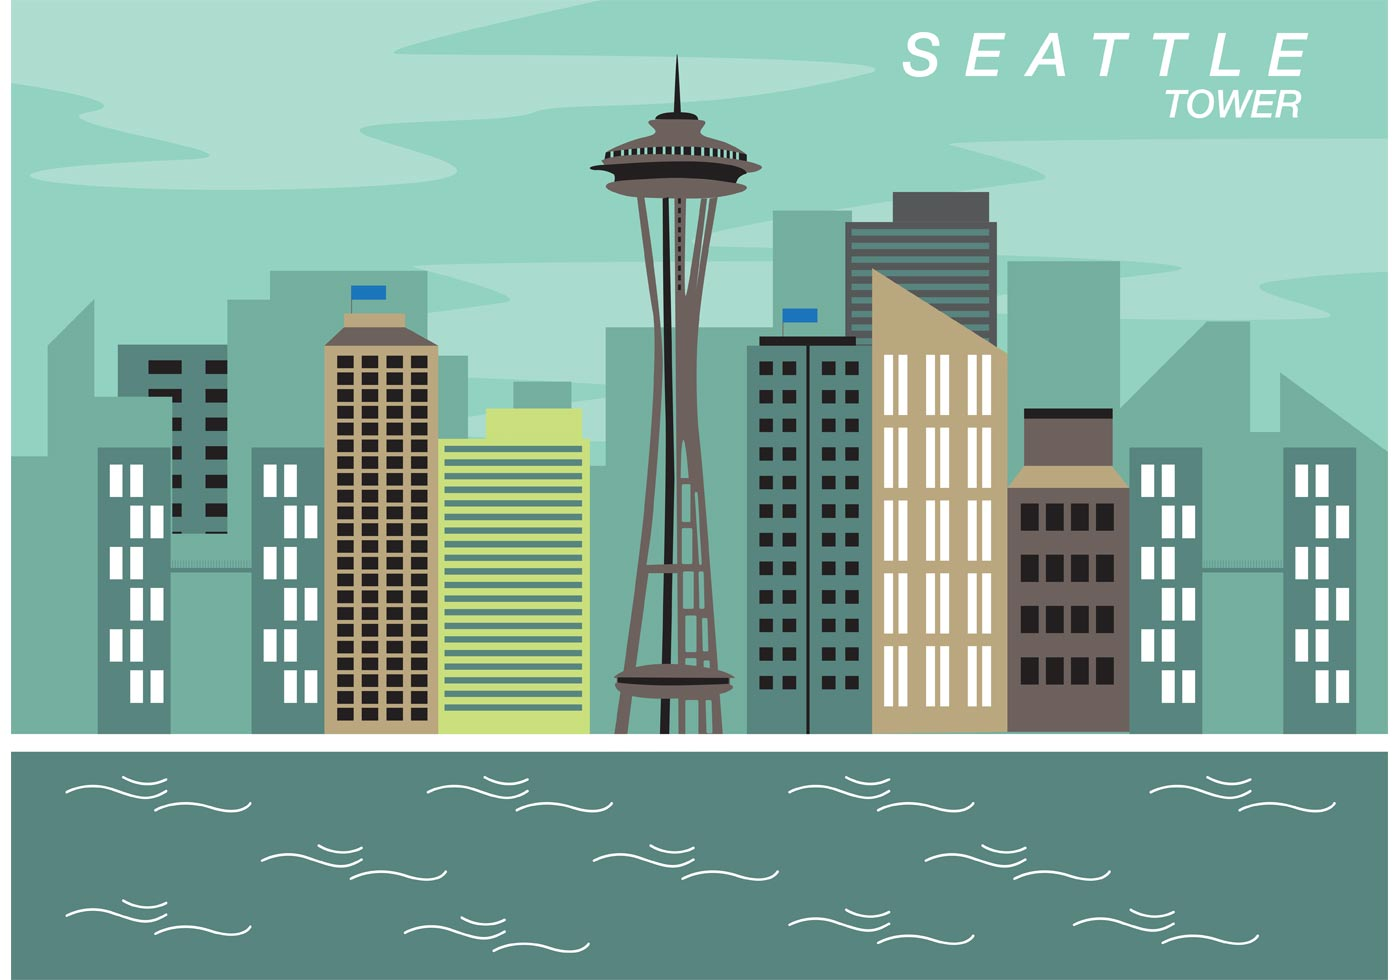 seattle space needle vector 3873 free downloads rh vecteezy com seattle space needle vector space needle vector free